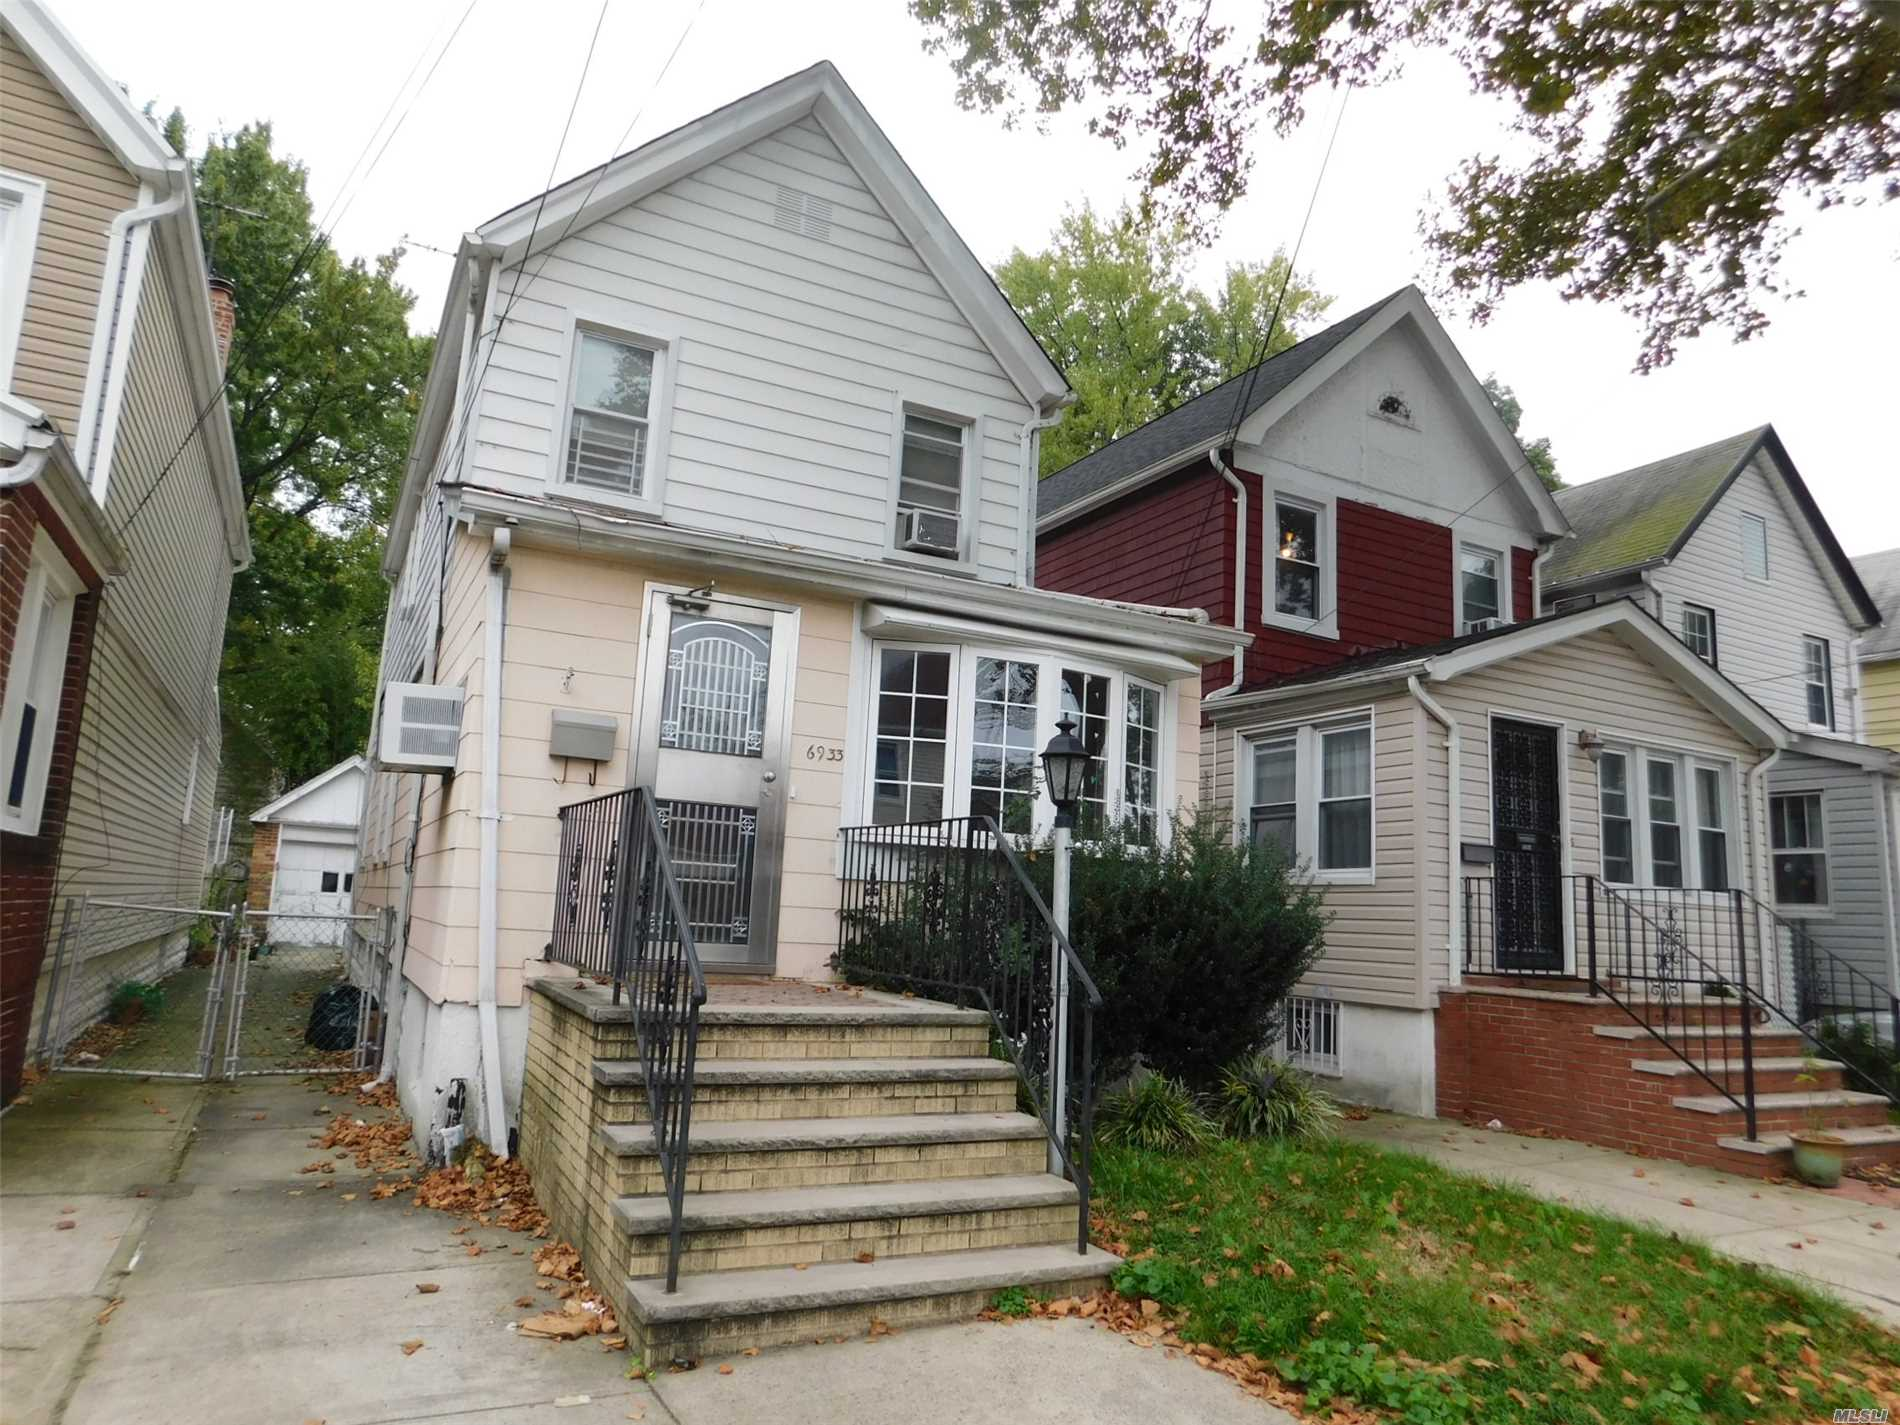 Detached 3 Bedrooms 2.5 Baths Colonial With An Oversized Eat In Kitchen Yard And Garage.